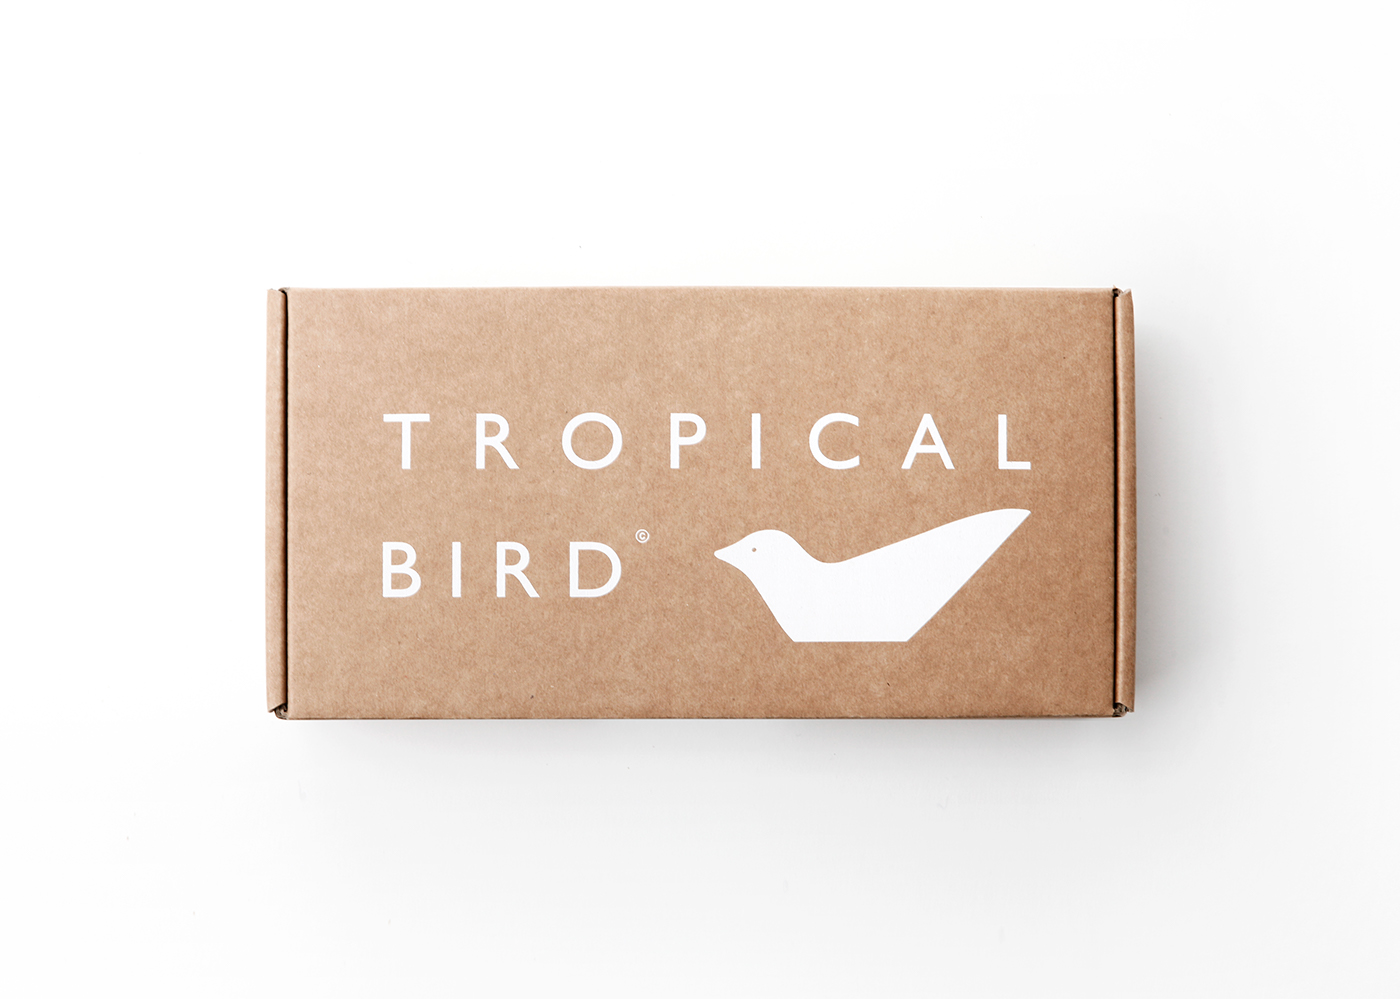 Collection toy Adult Tropical bird product wood design color desktop